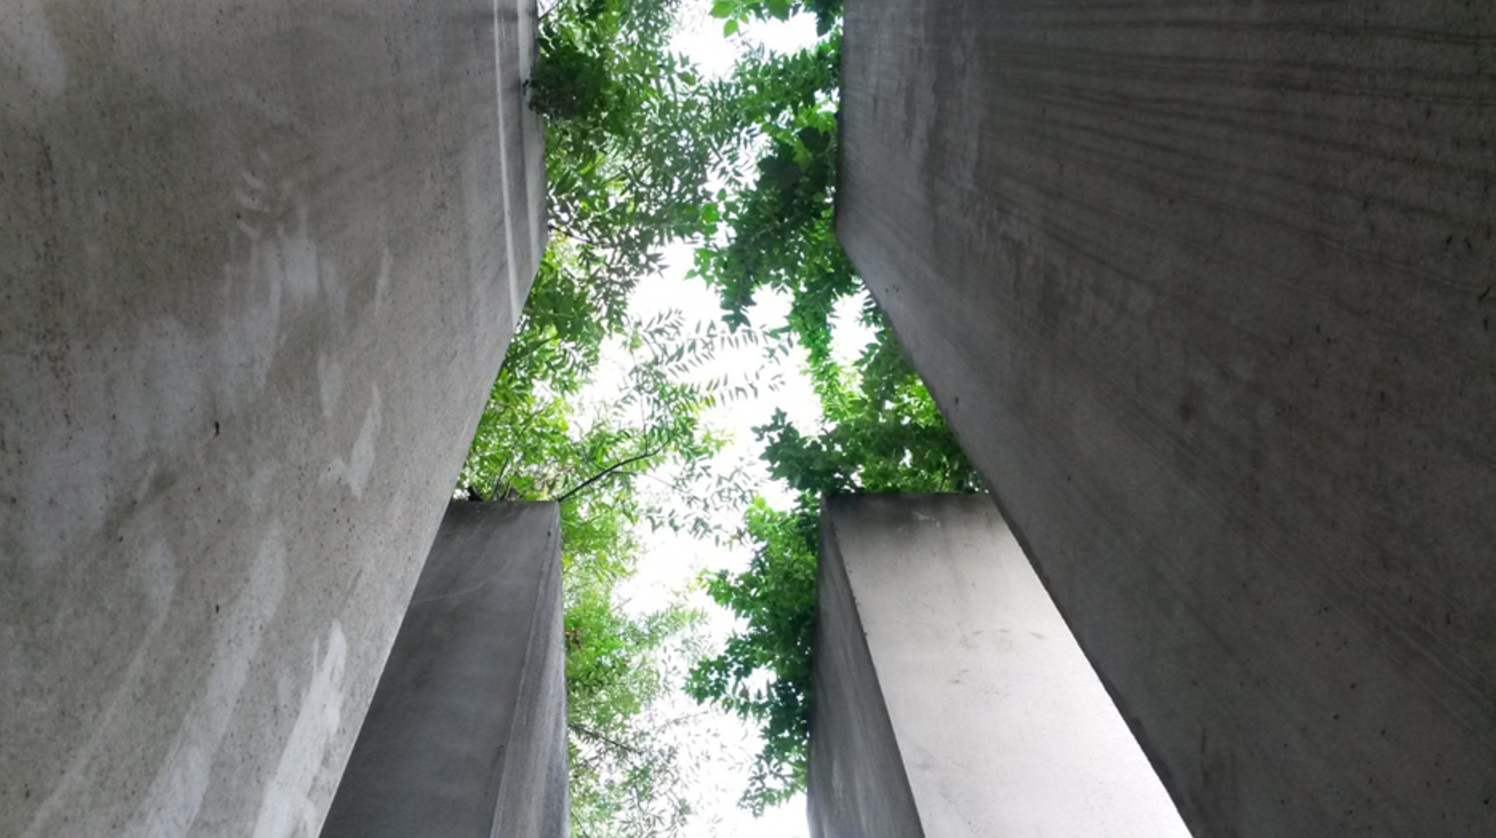 Holocaust Memorials in Berlin: When Concrete Articulates the Unspeakable